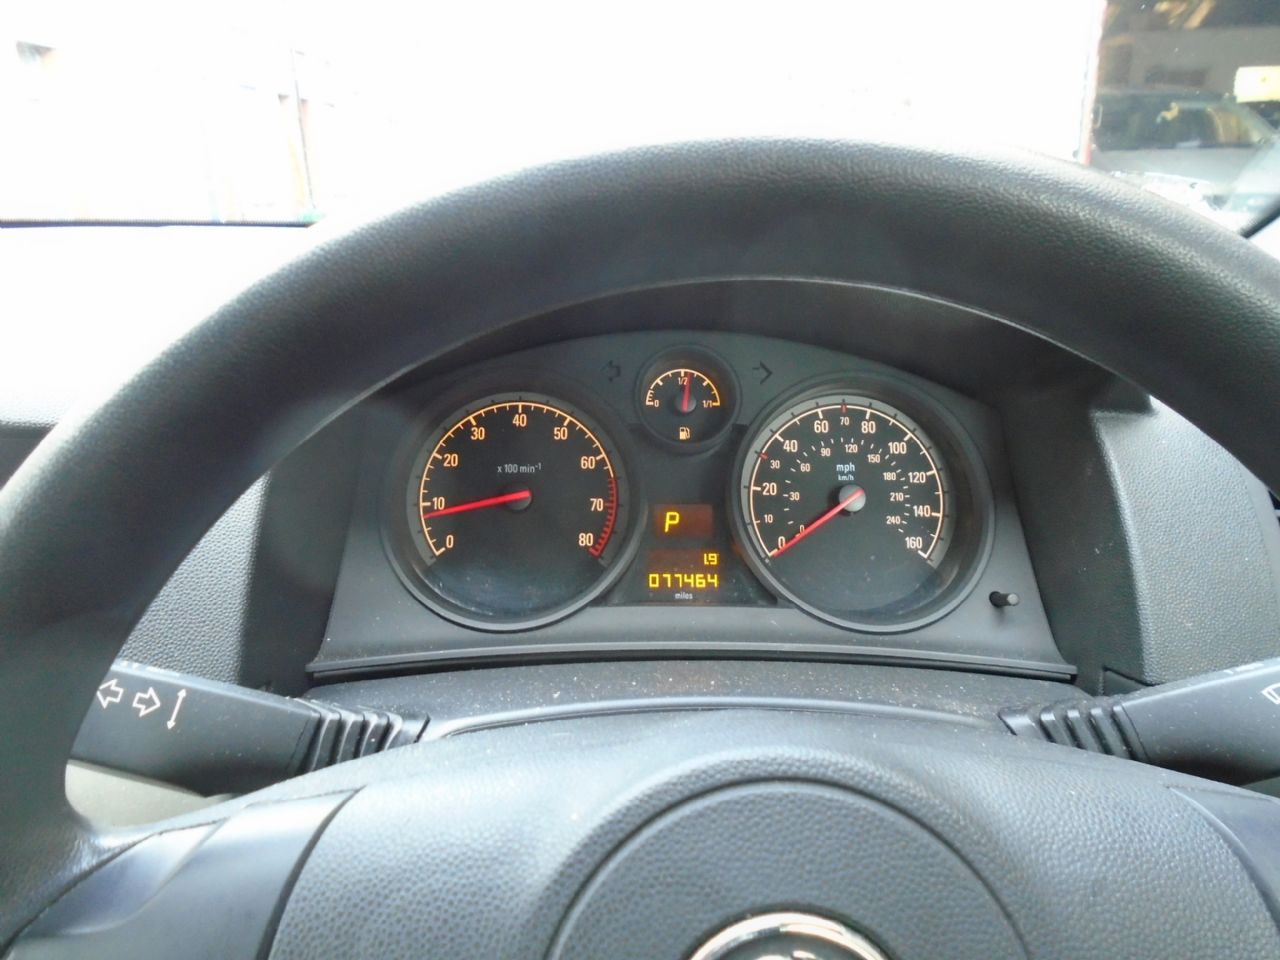 VAUXHALL Astra Life 1.8i 16v auto (a/c) VIP - Picture 5